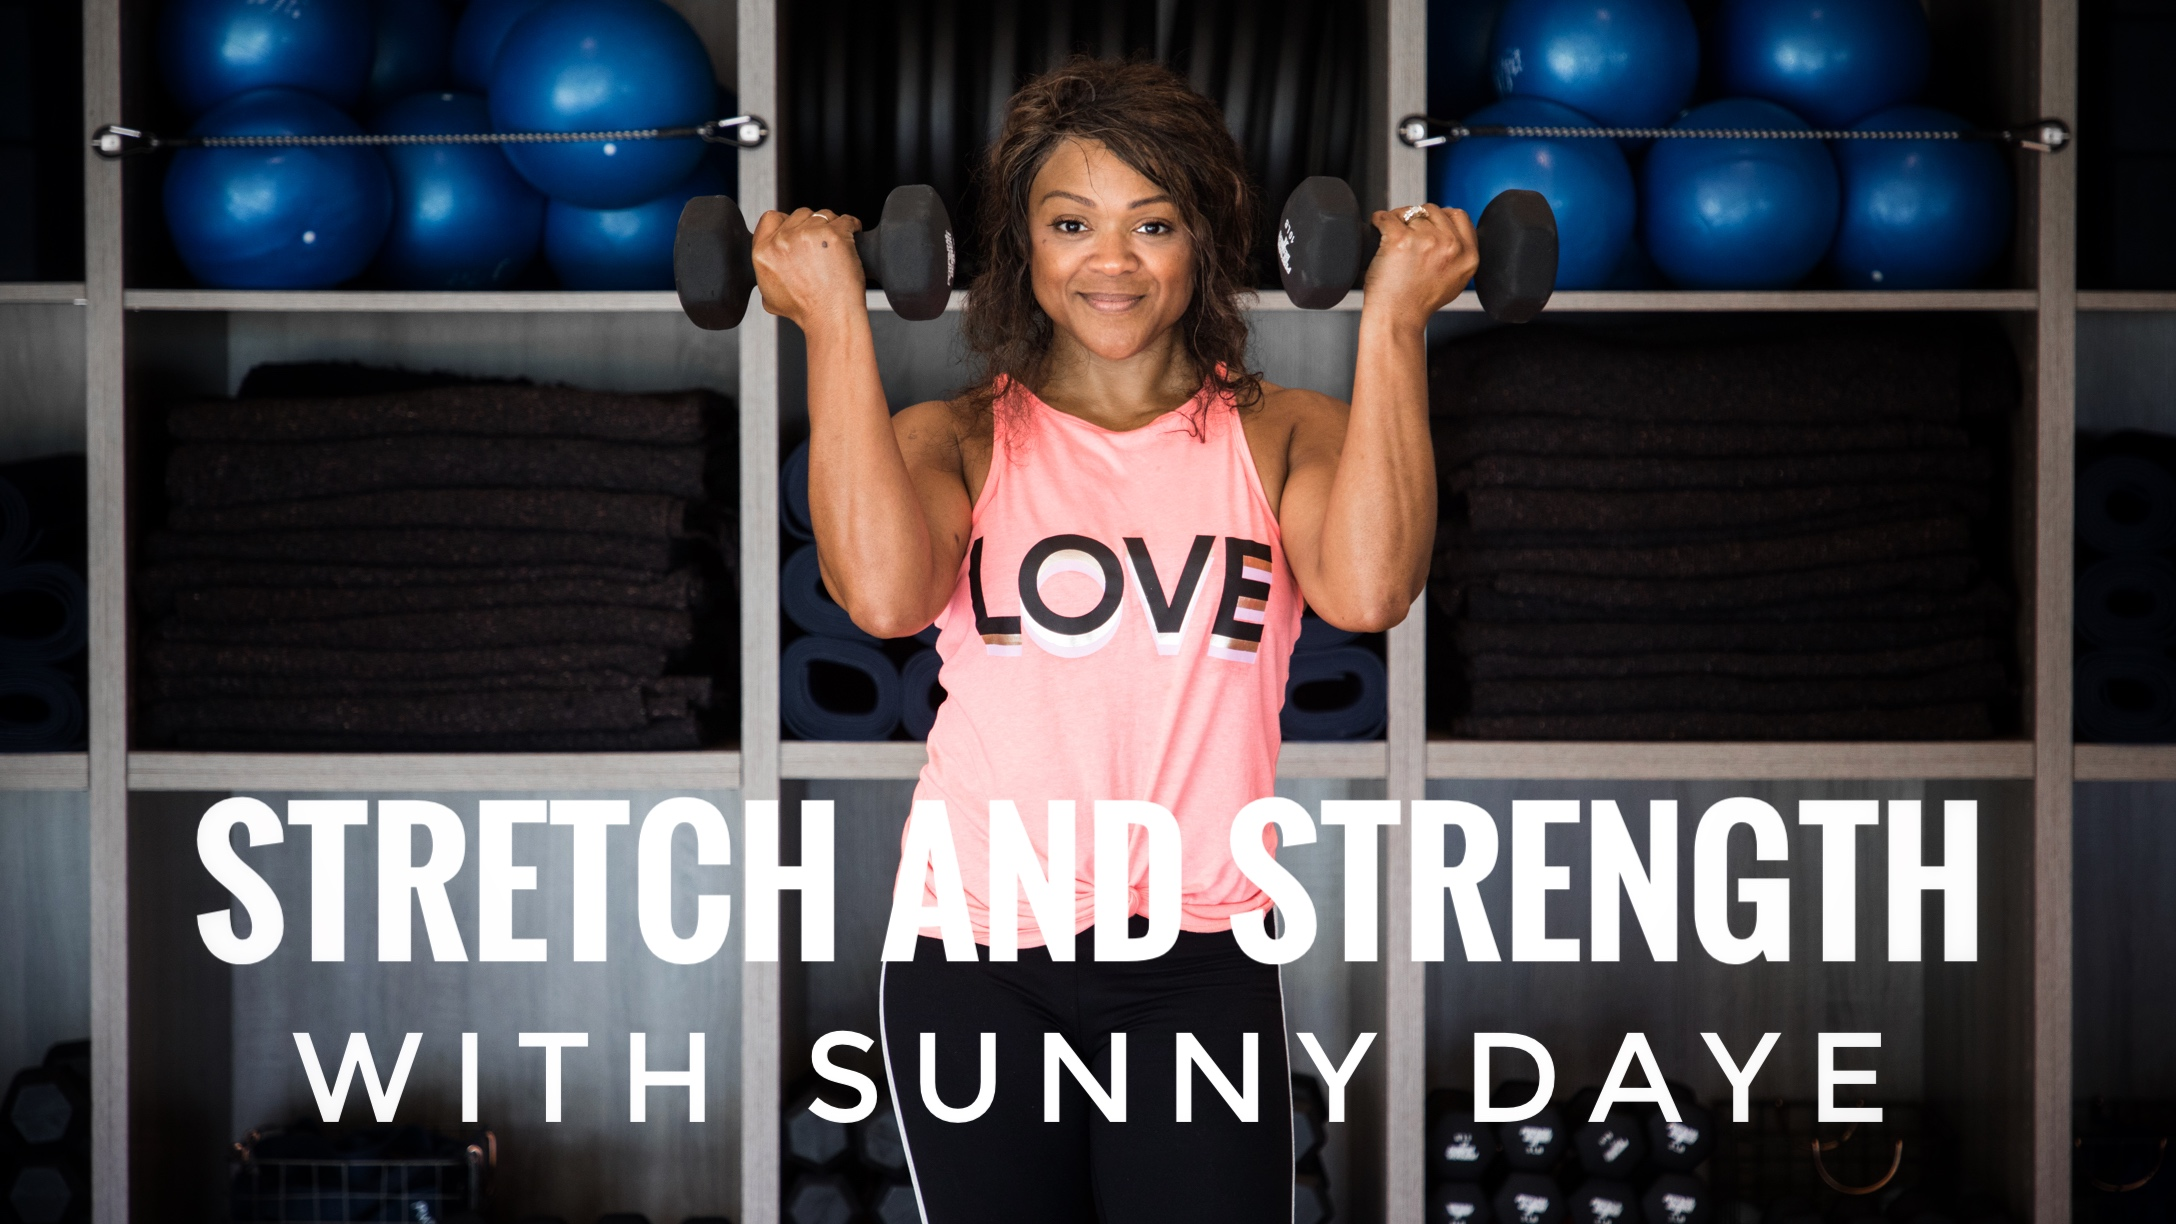 Stretch and Strength with Sunny Daye